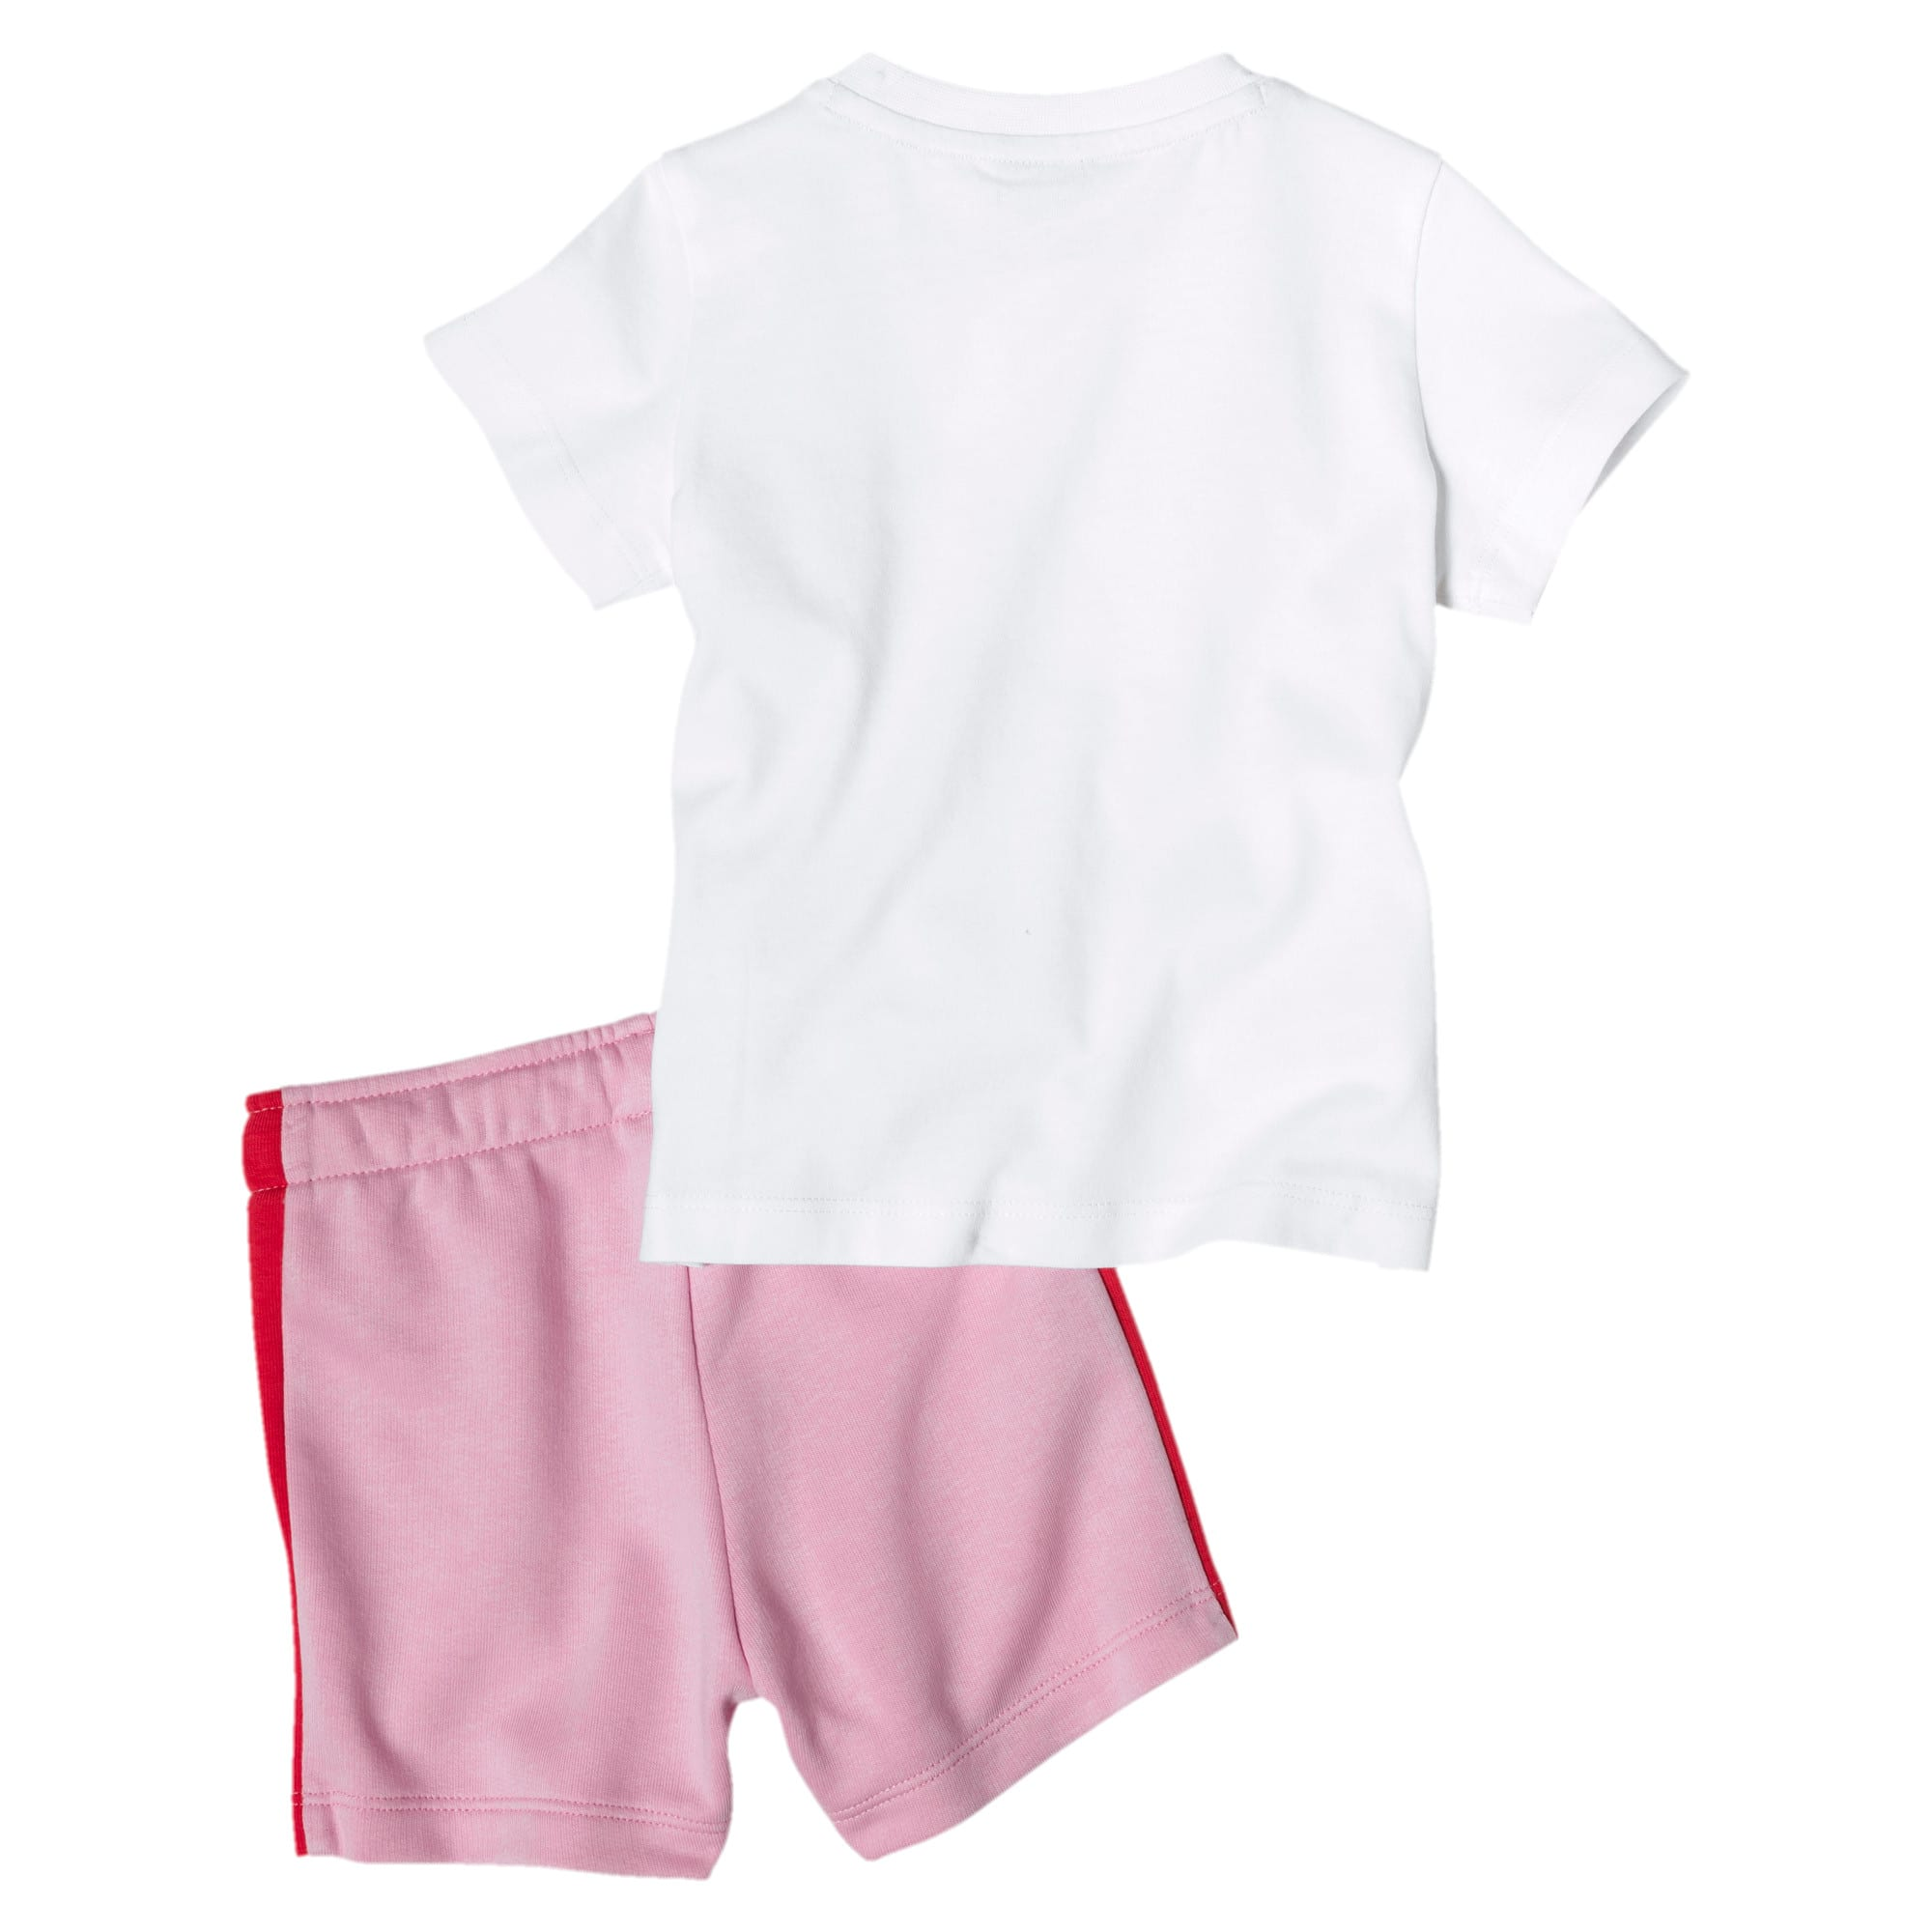 Thumbnail 2 of Minicats T7 Babies' Set, Pale Pink, medium